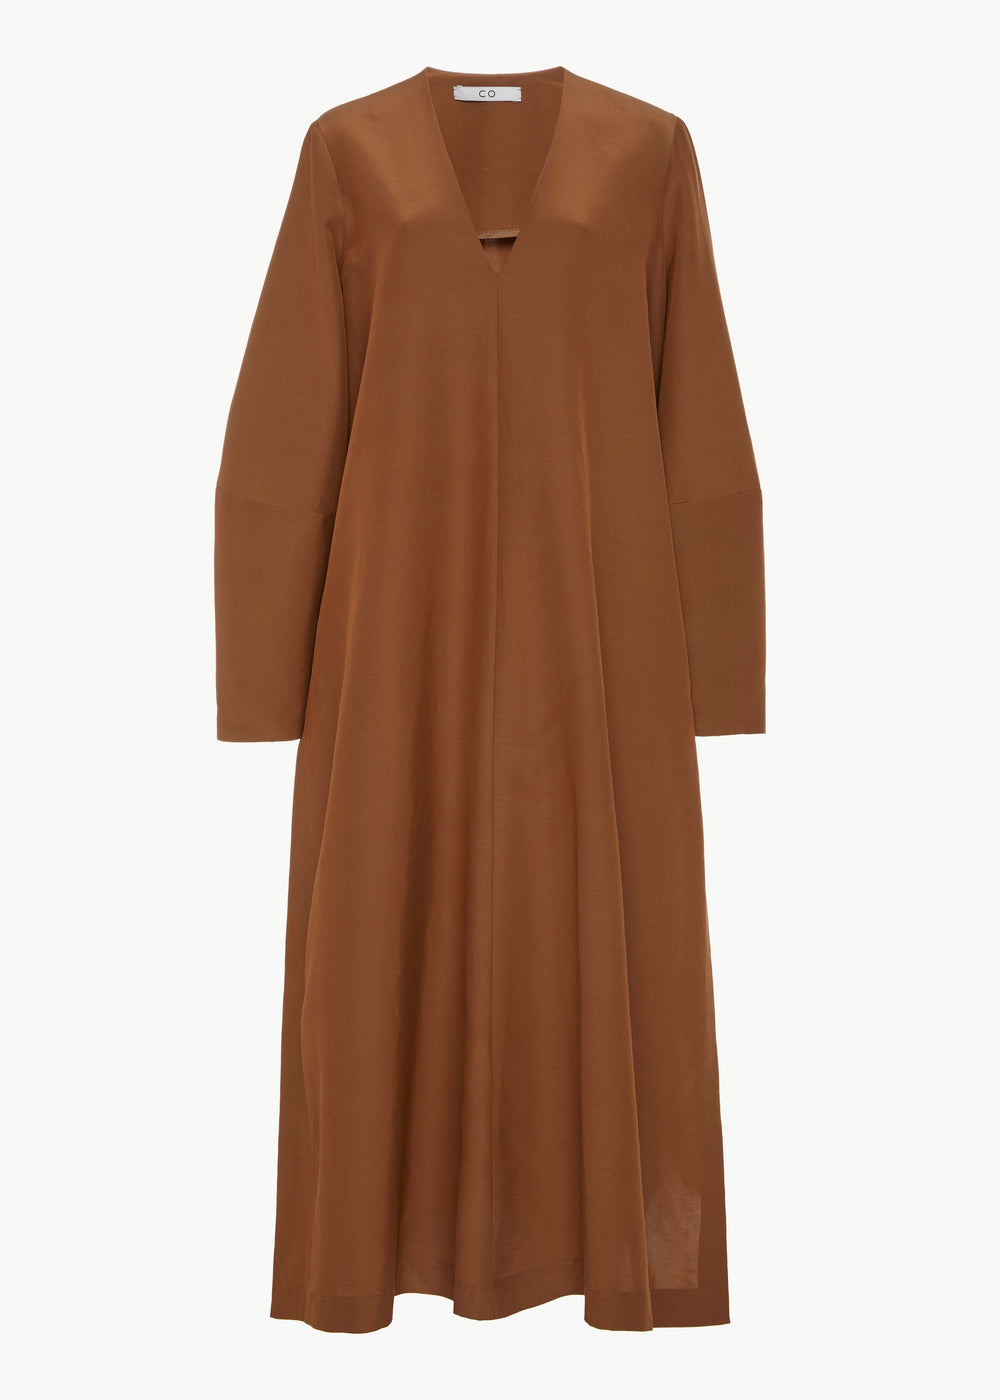 Long Sleeve V-Neck Dress in Faille - Copper - CO